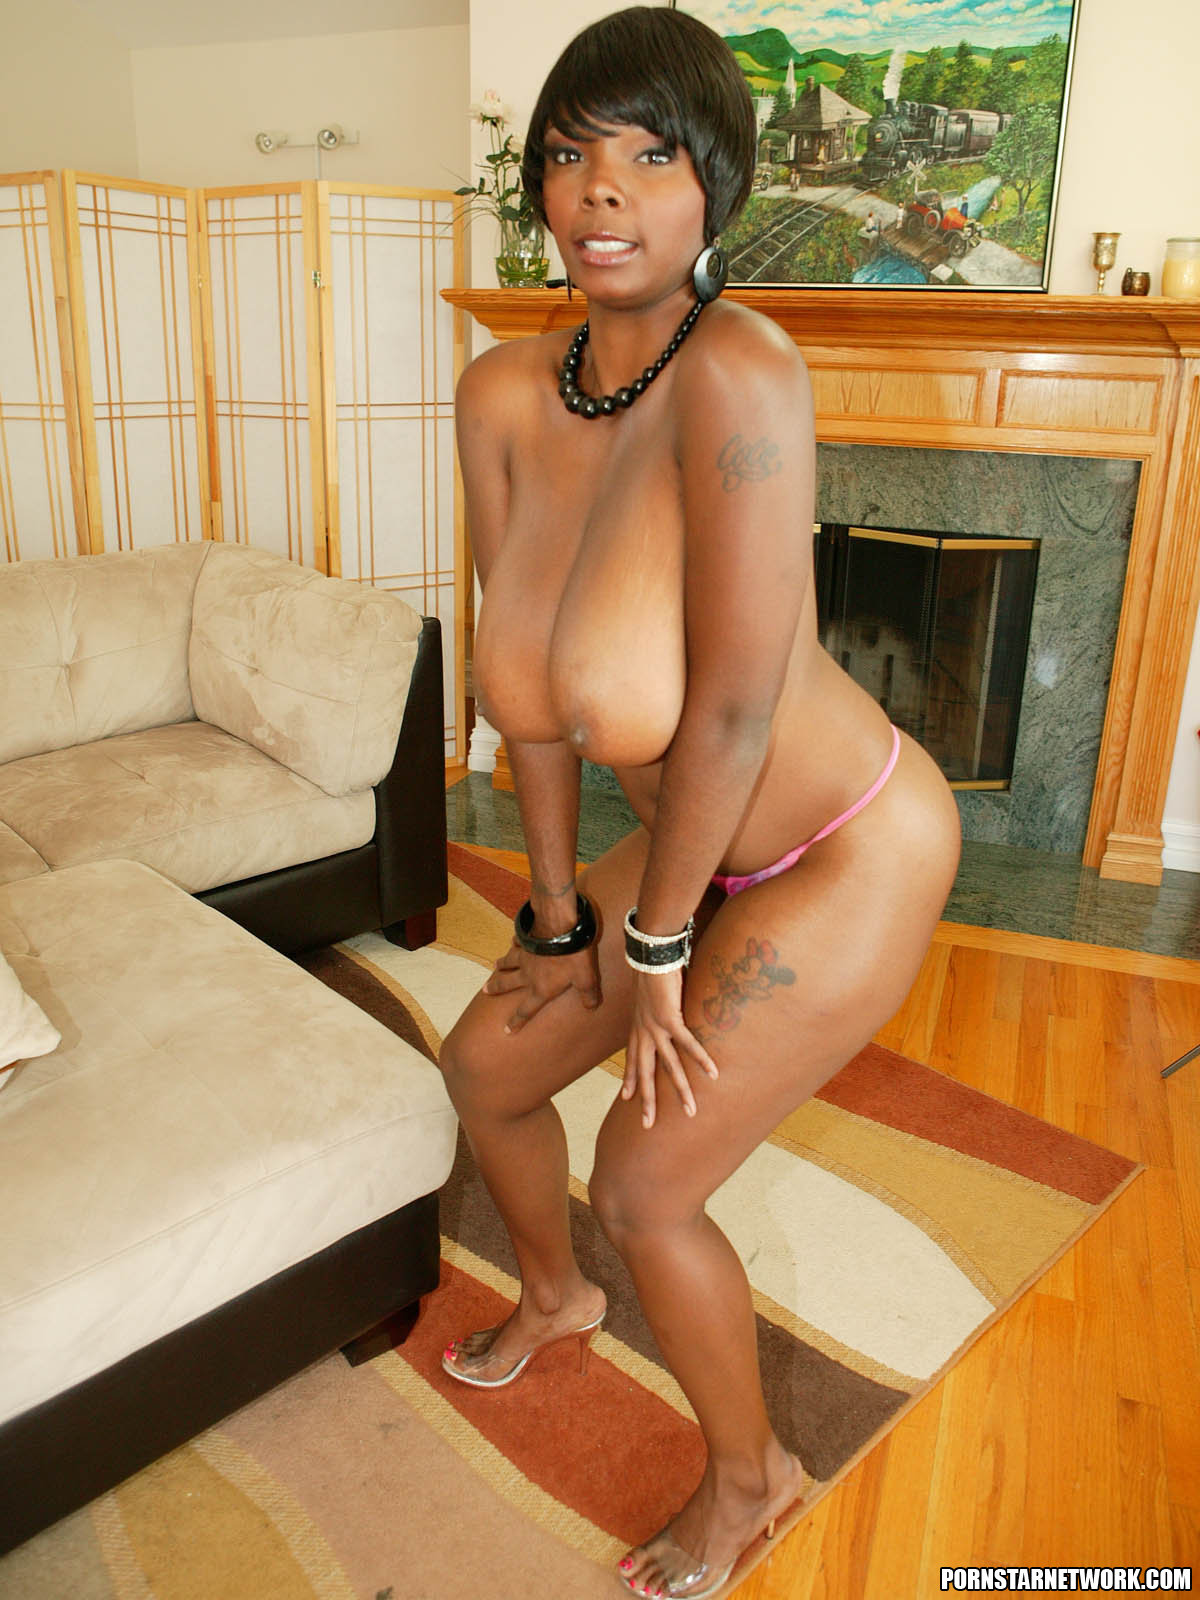 Ebony Stacy Adams Shows Off Her Big Natural Tits 58094-6399